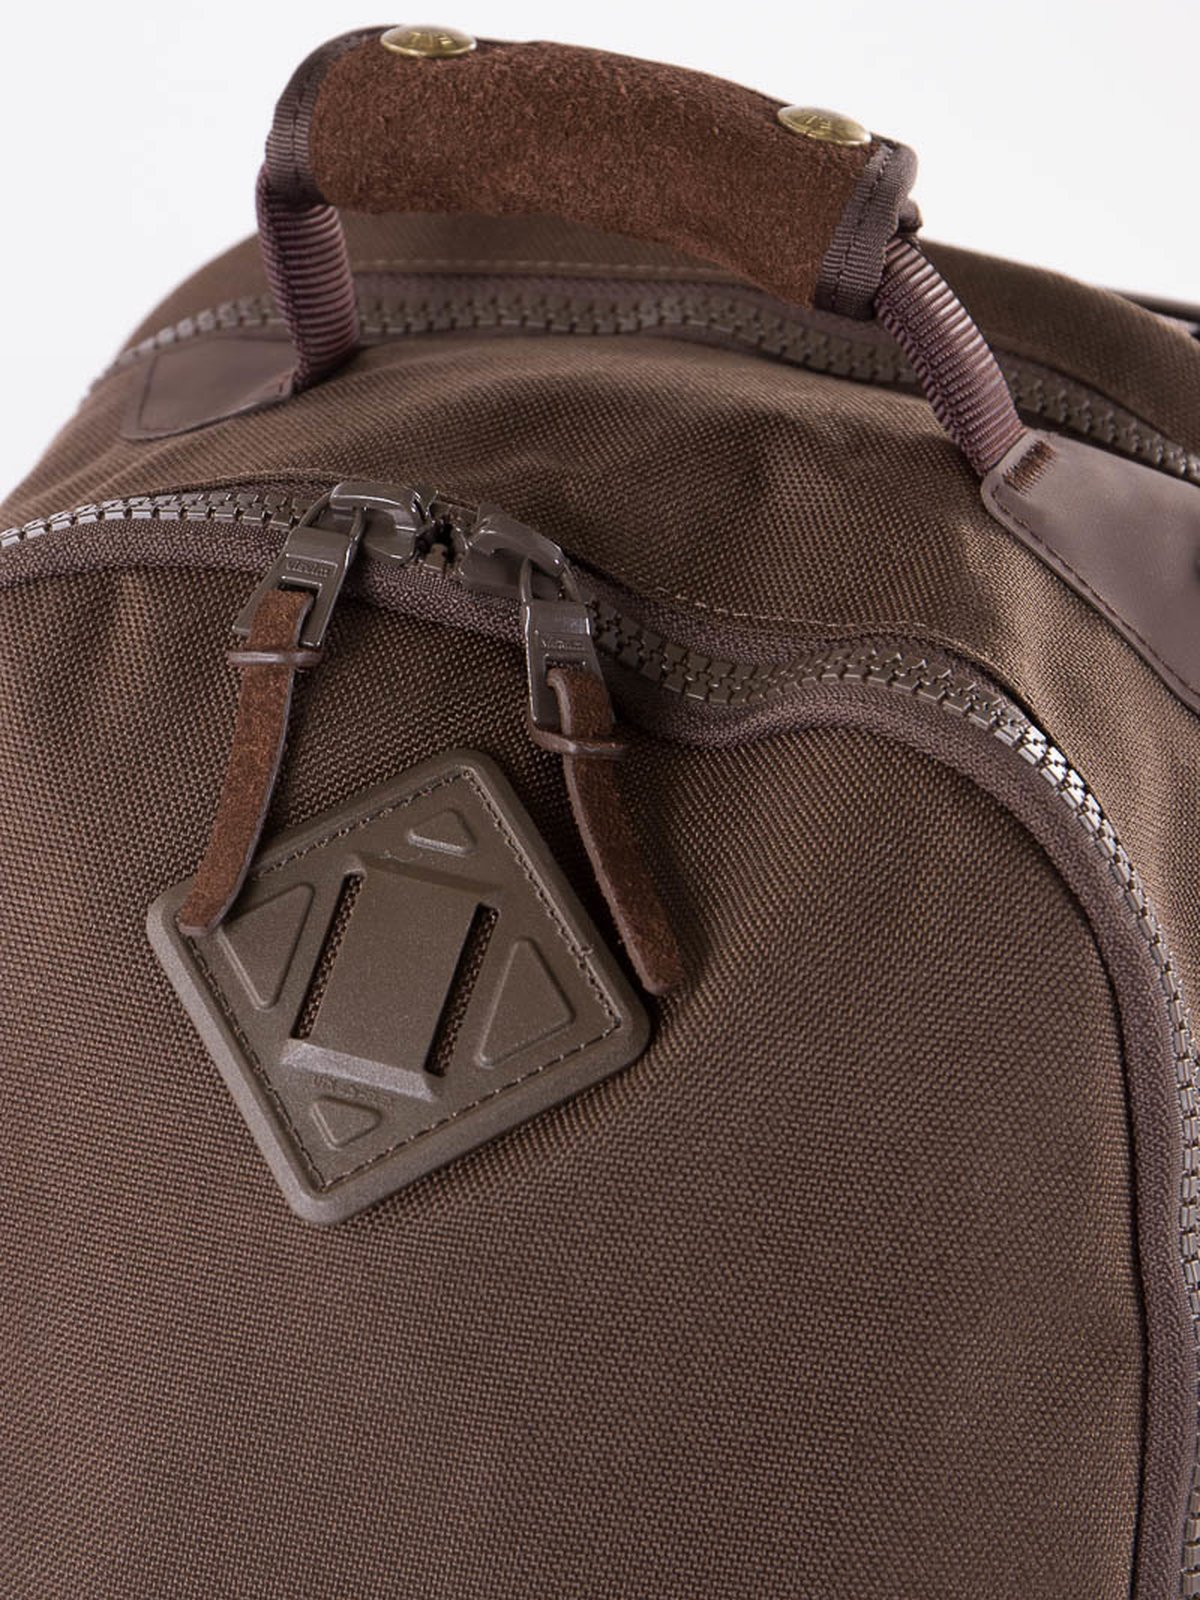 Brown 20L Ballistic Backpack - Image 7